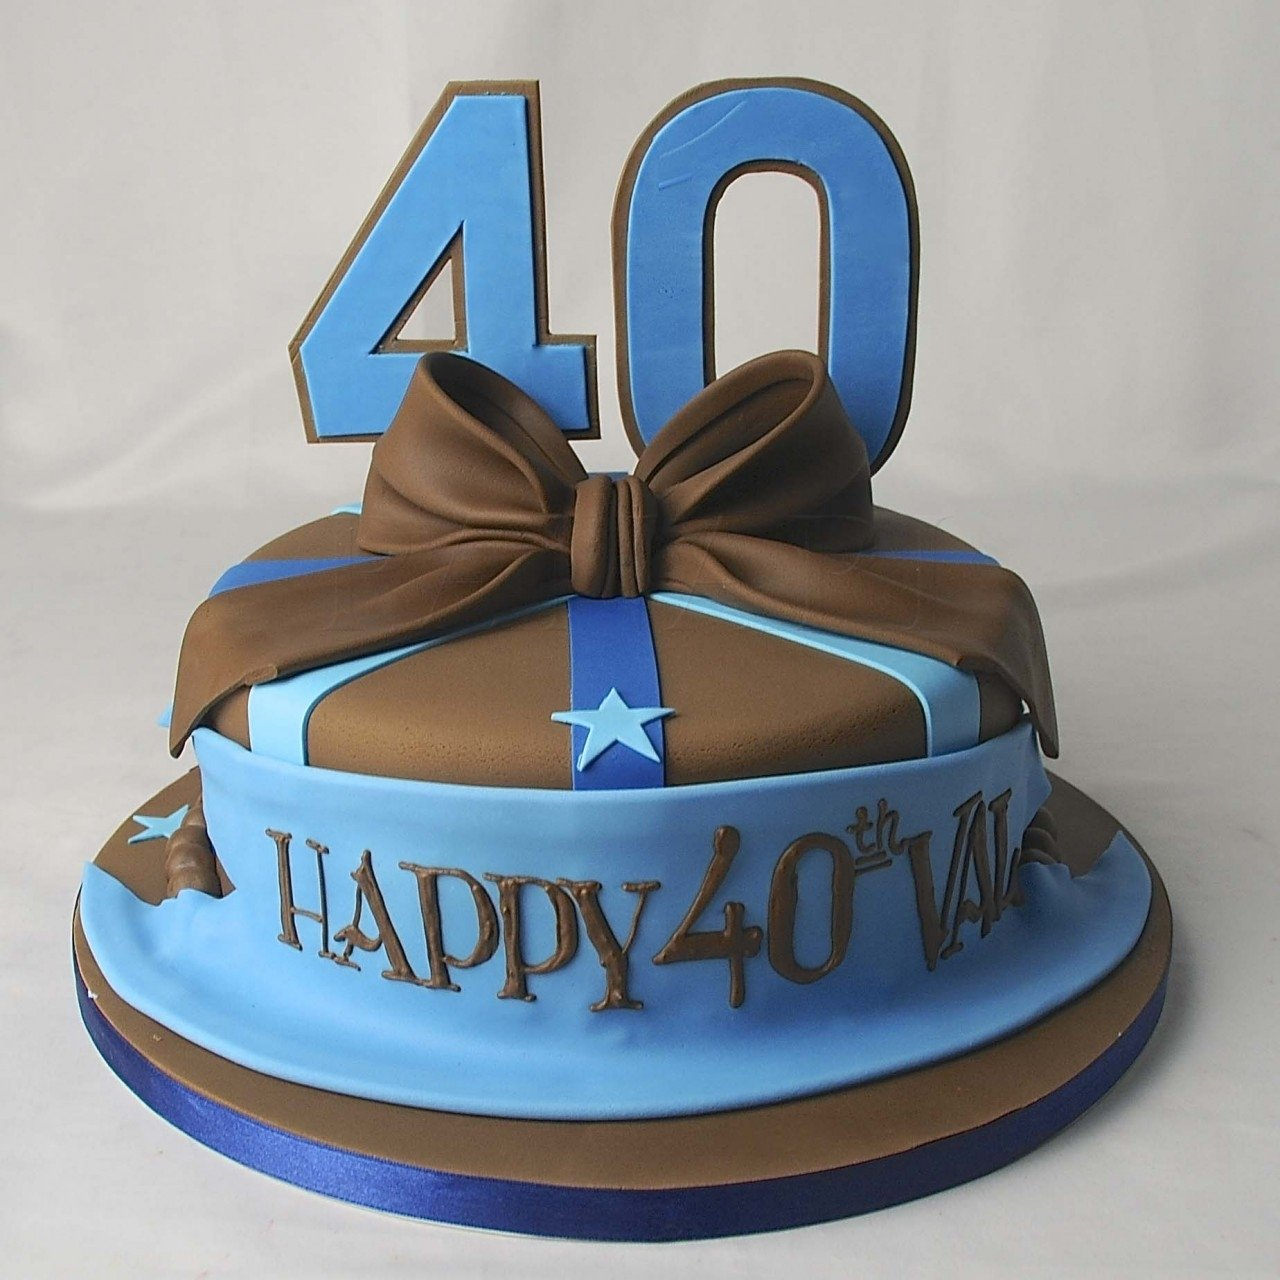 10 Nice Birthday Cake Ideas For Men 40th Google Search